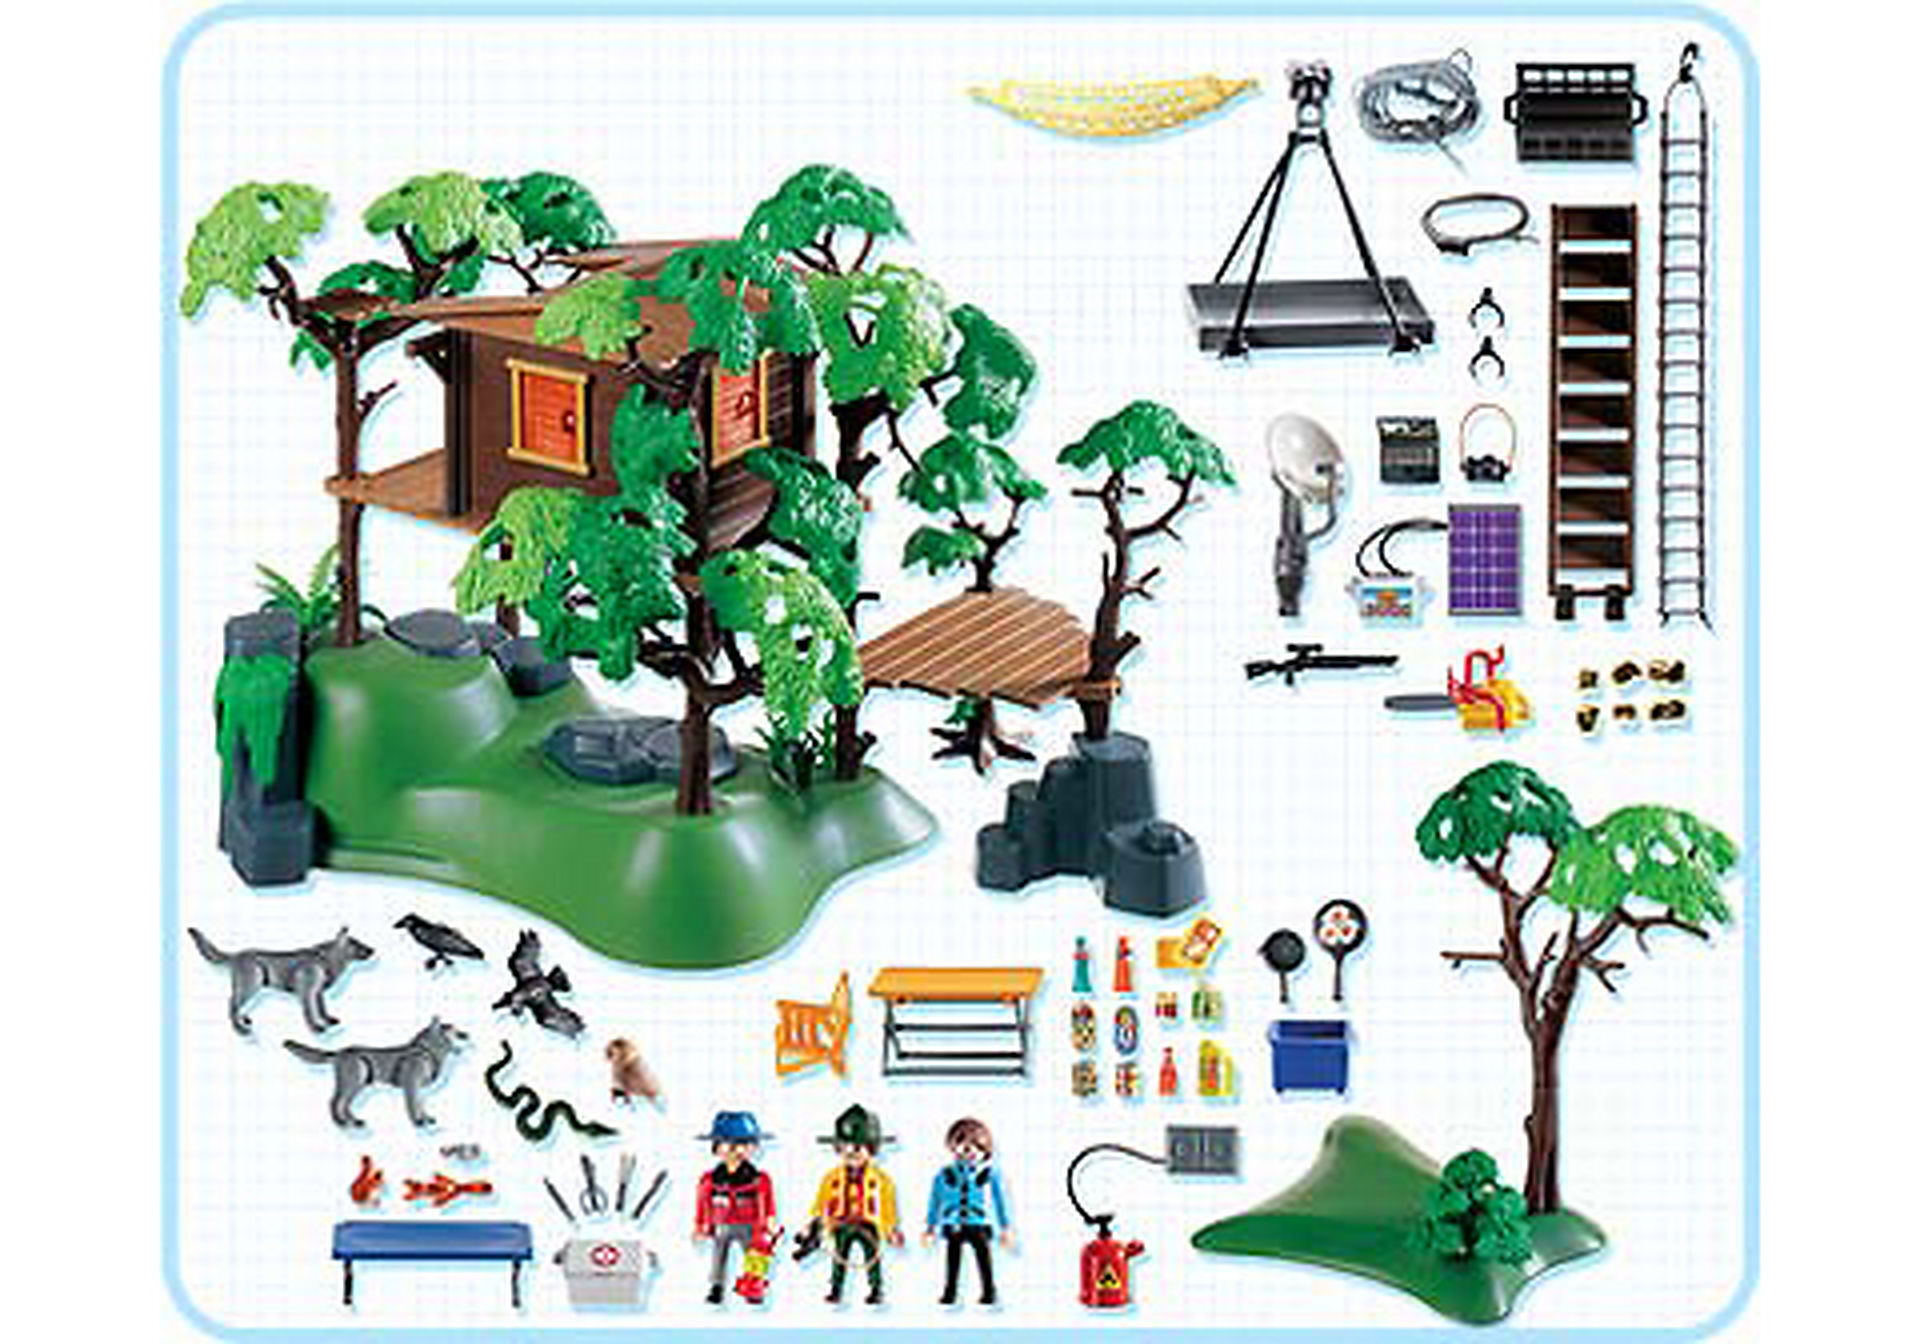 http://media.playmobil.com/i/playmobil/3217-B_product_box_back/Baumhaus